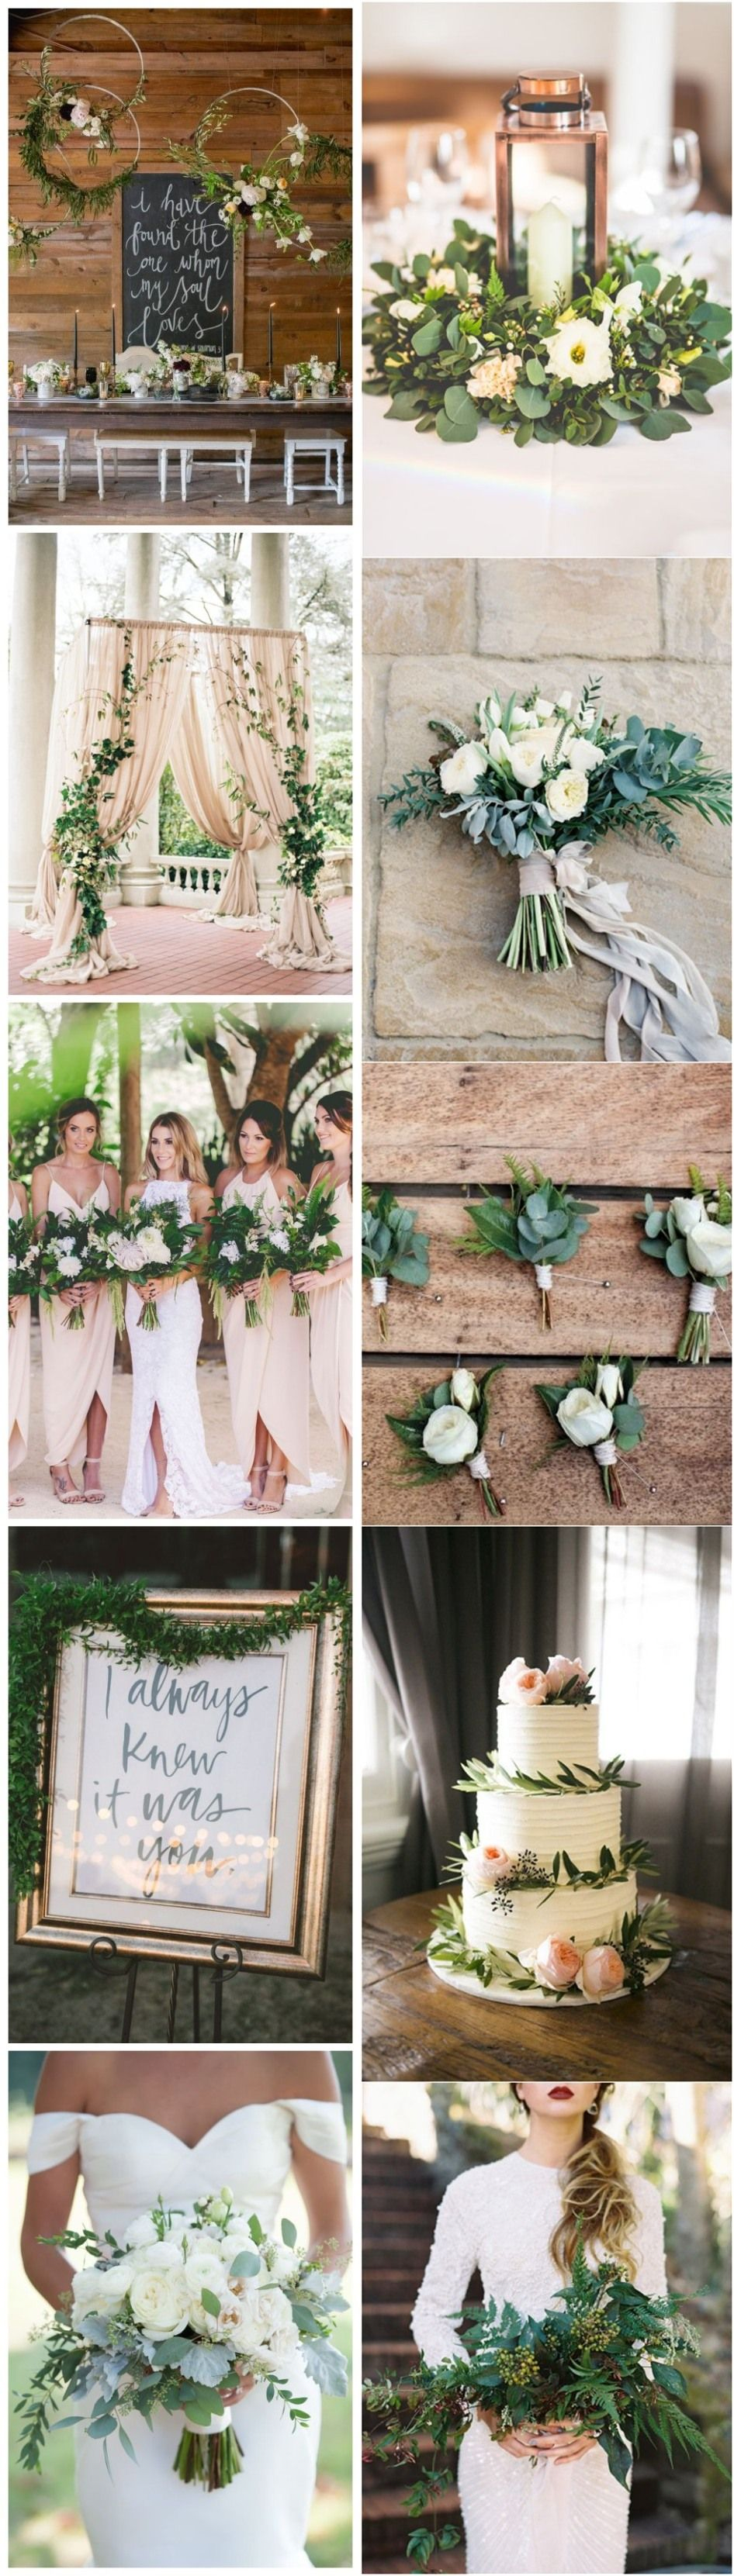 2017 spring wedding color and ideas weddings wedding and dream